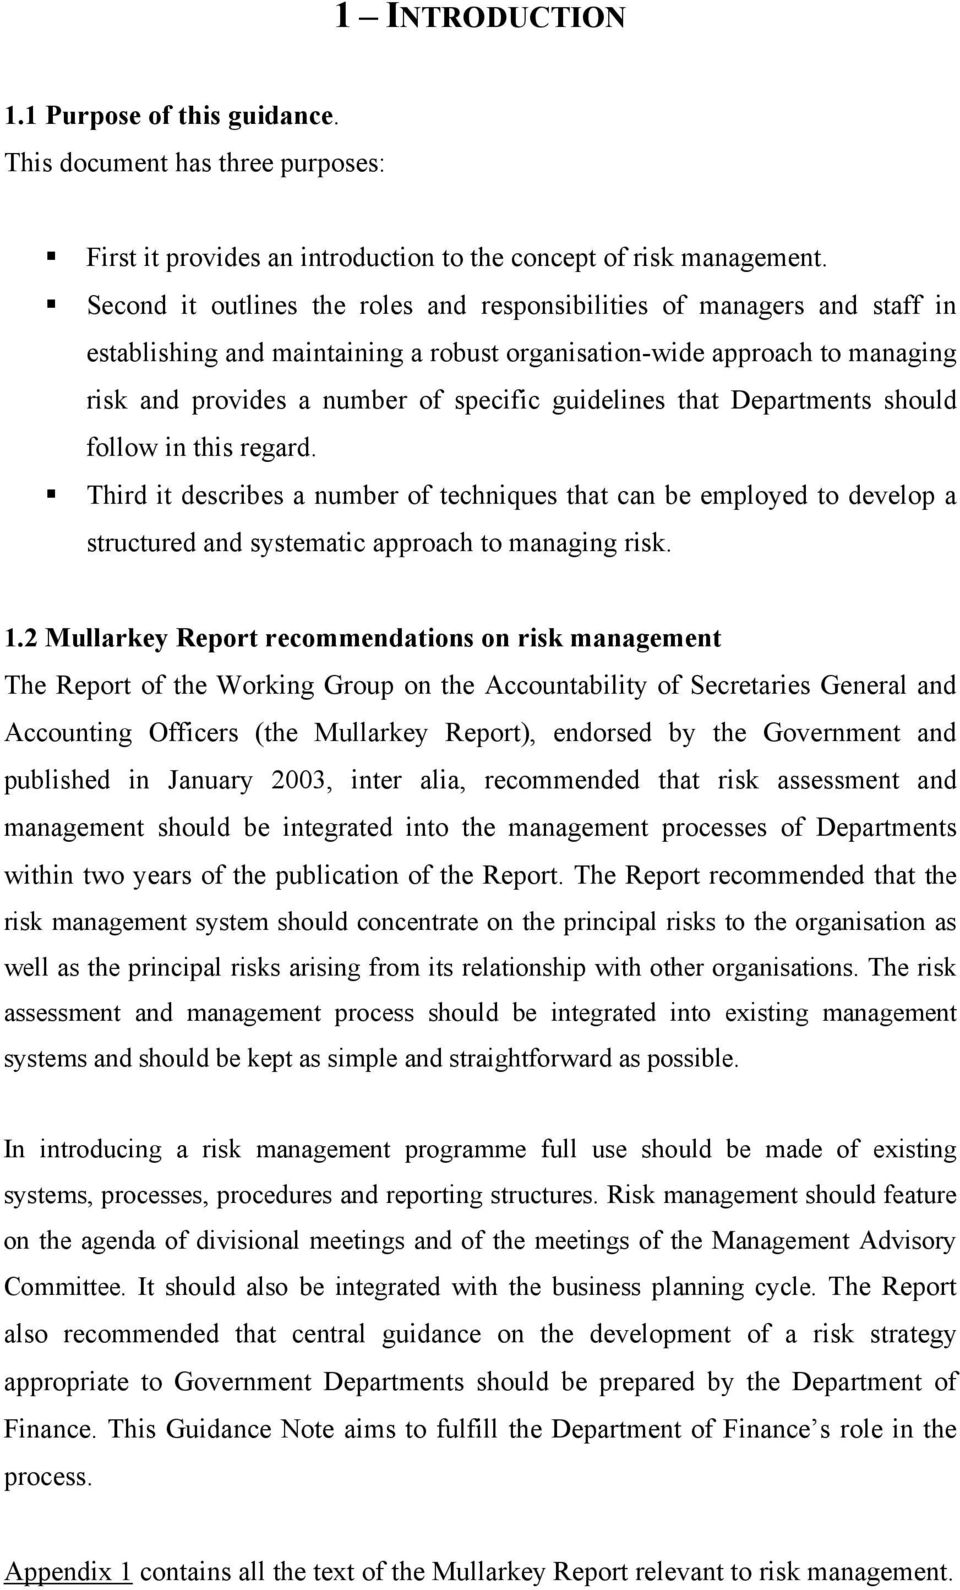 guidelines that Departments should follow in this regard. Third it describes a number of techniques that can be employed to develop a structured and systematic approach to managing risk. 1.